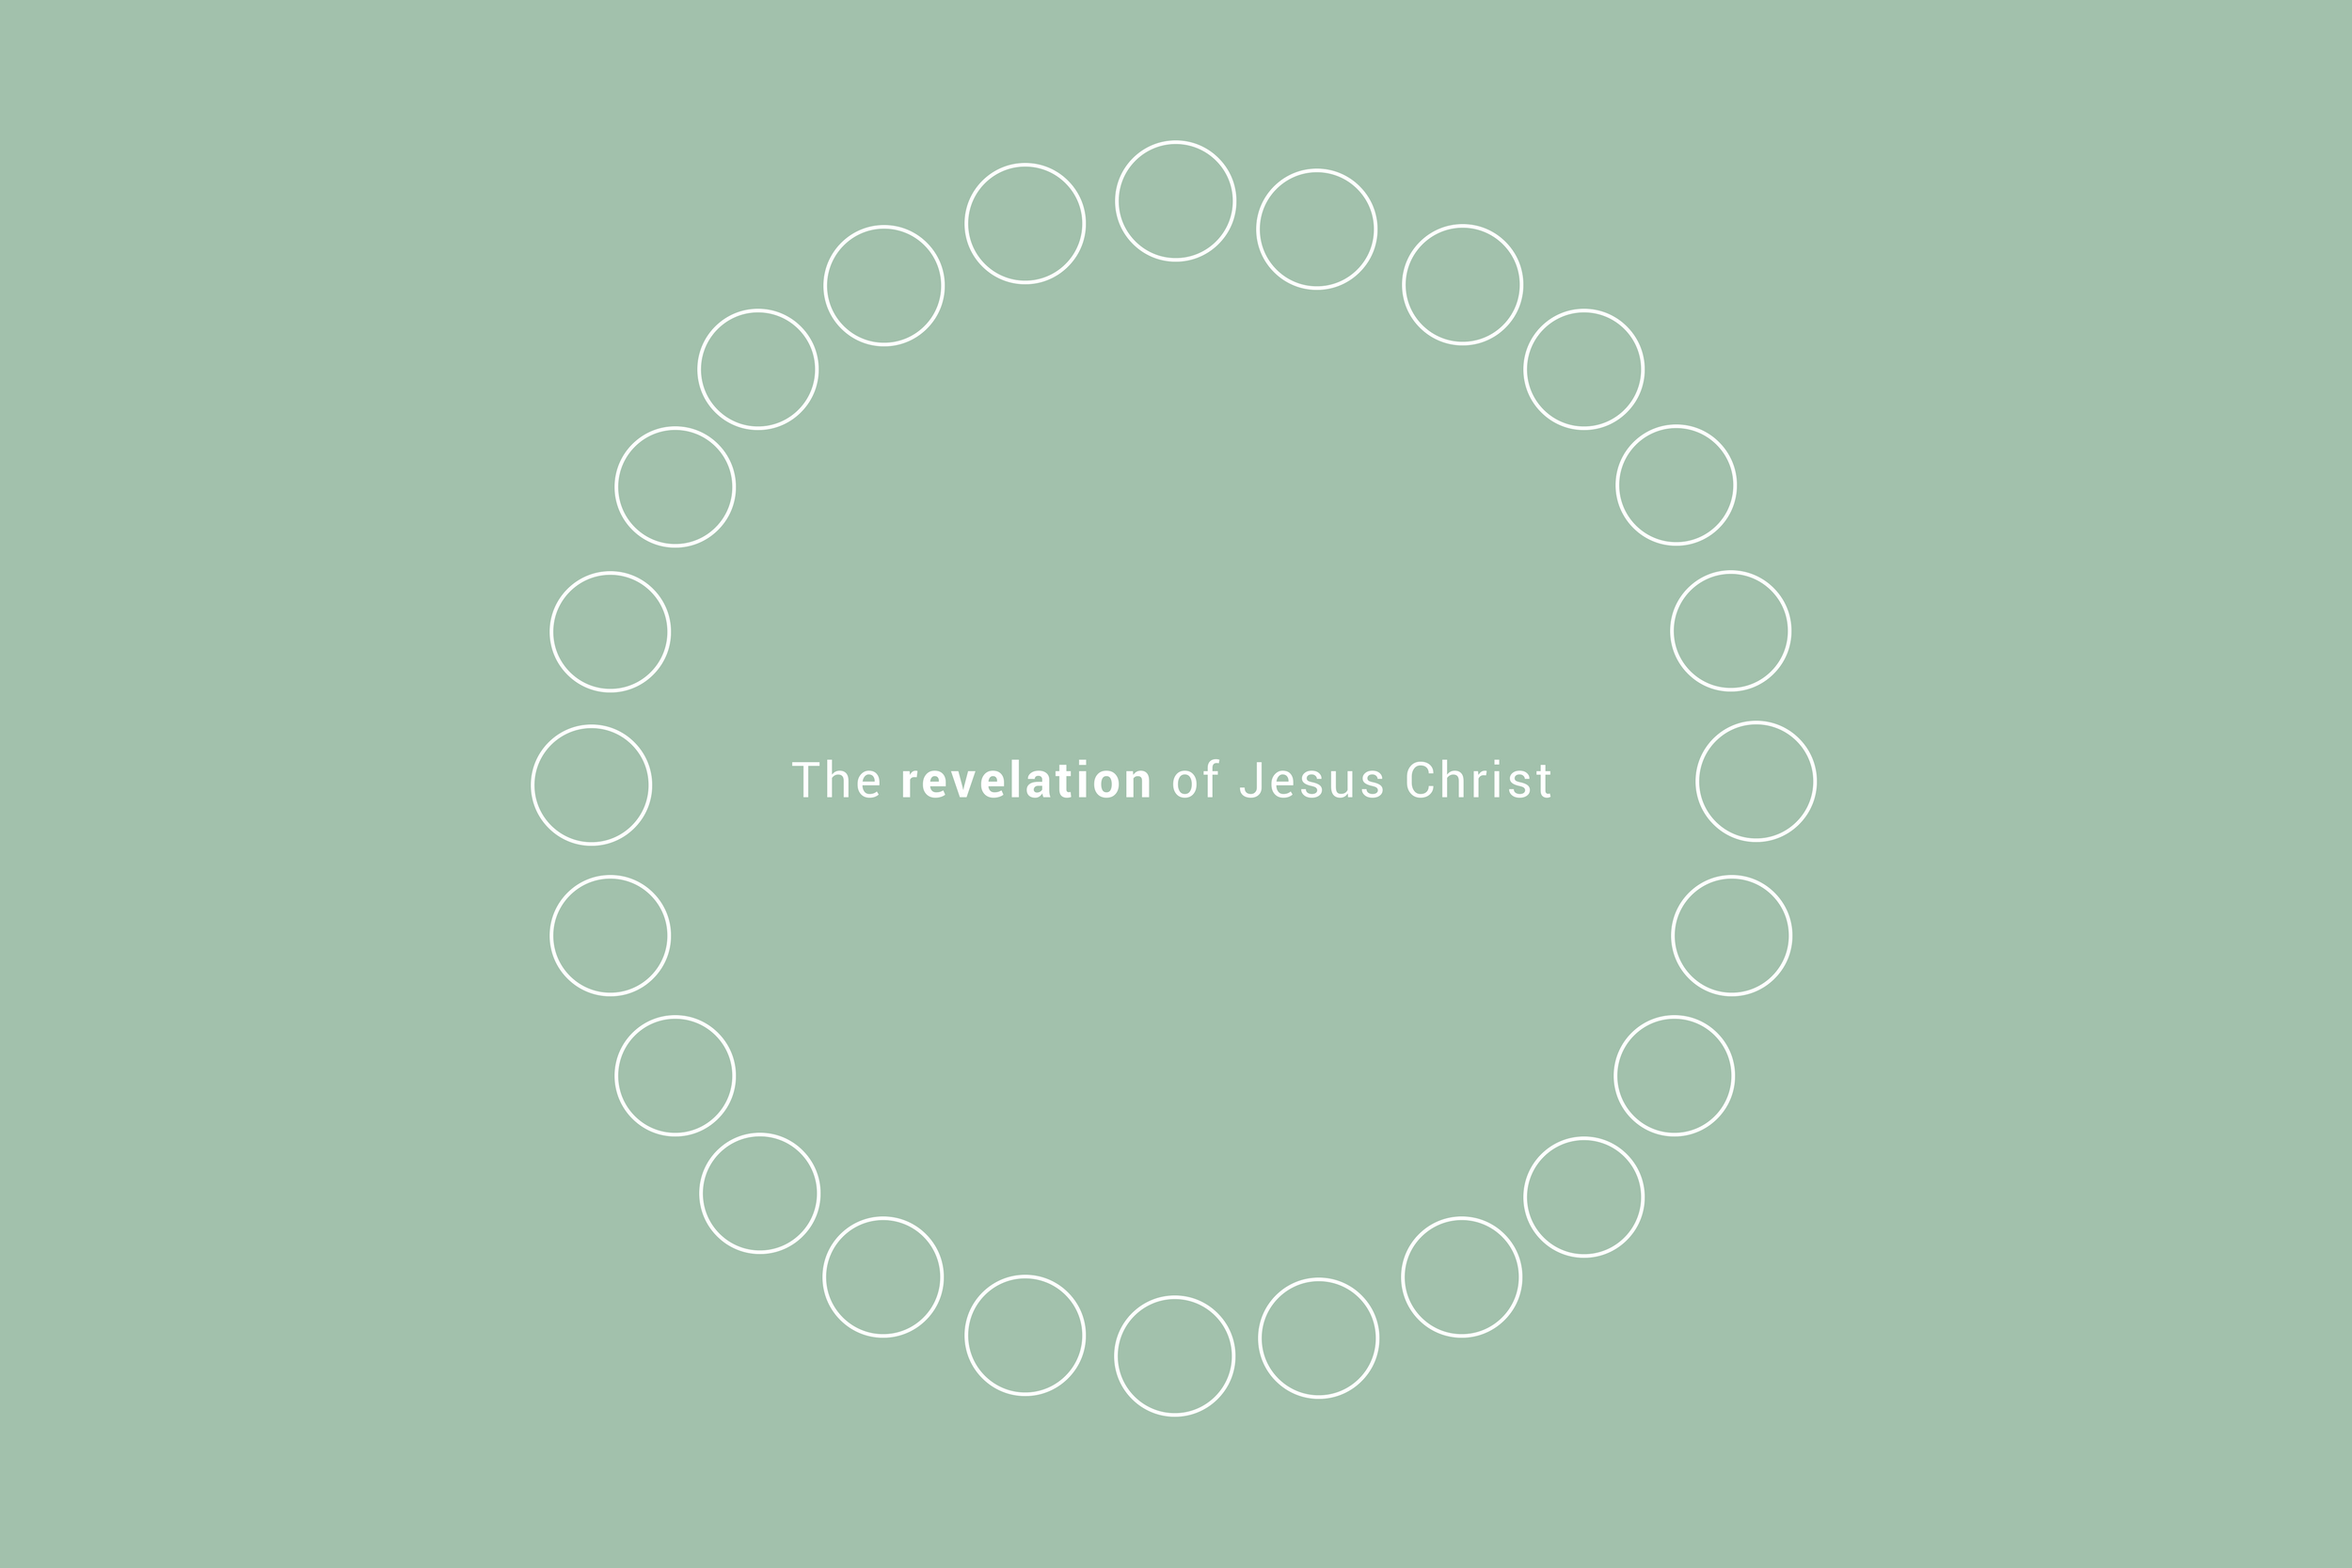 the revelation of jesus christ (2).png